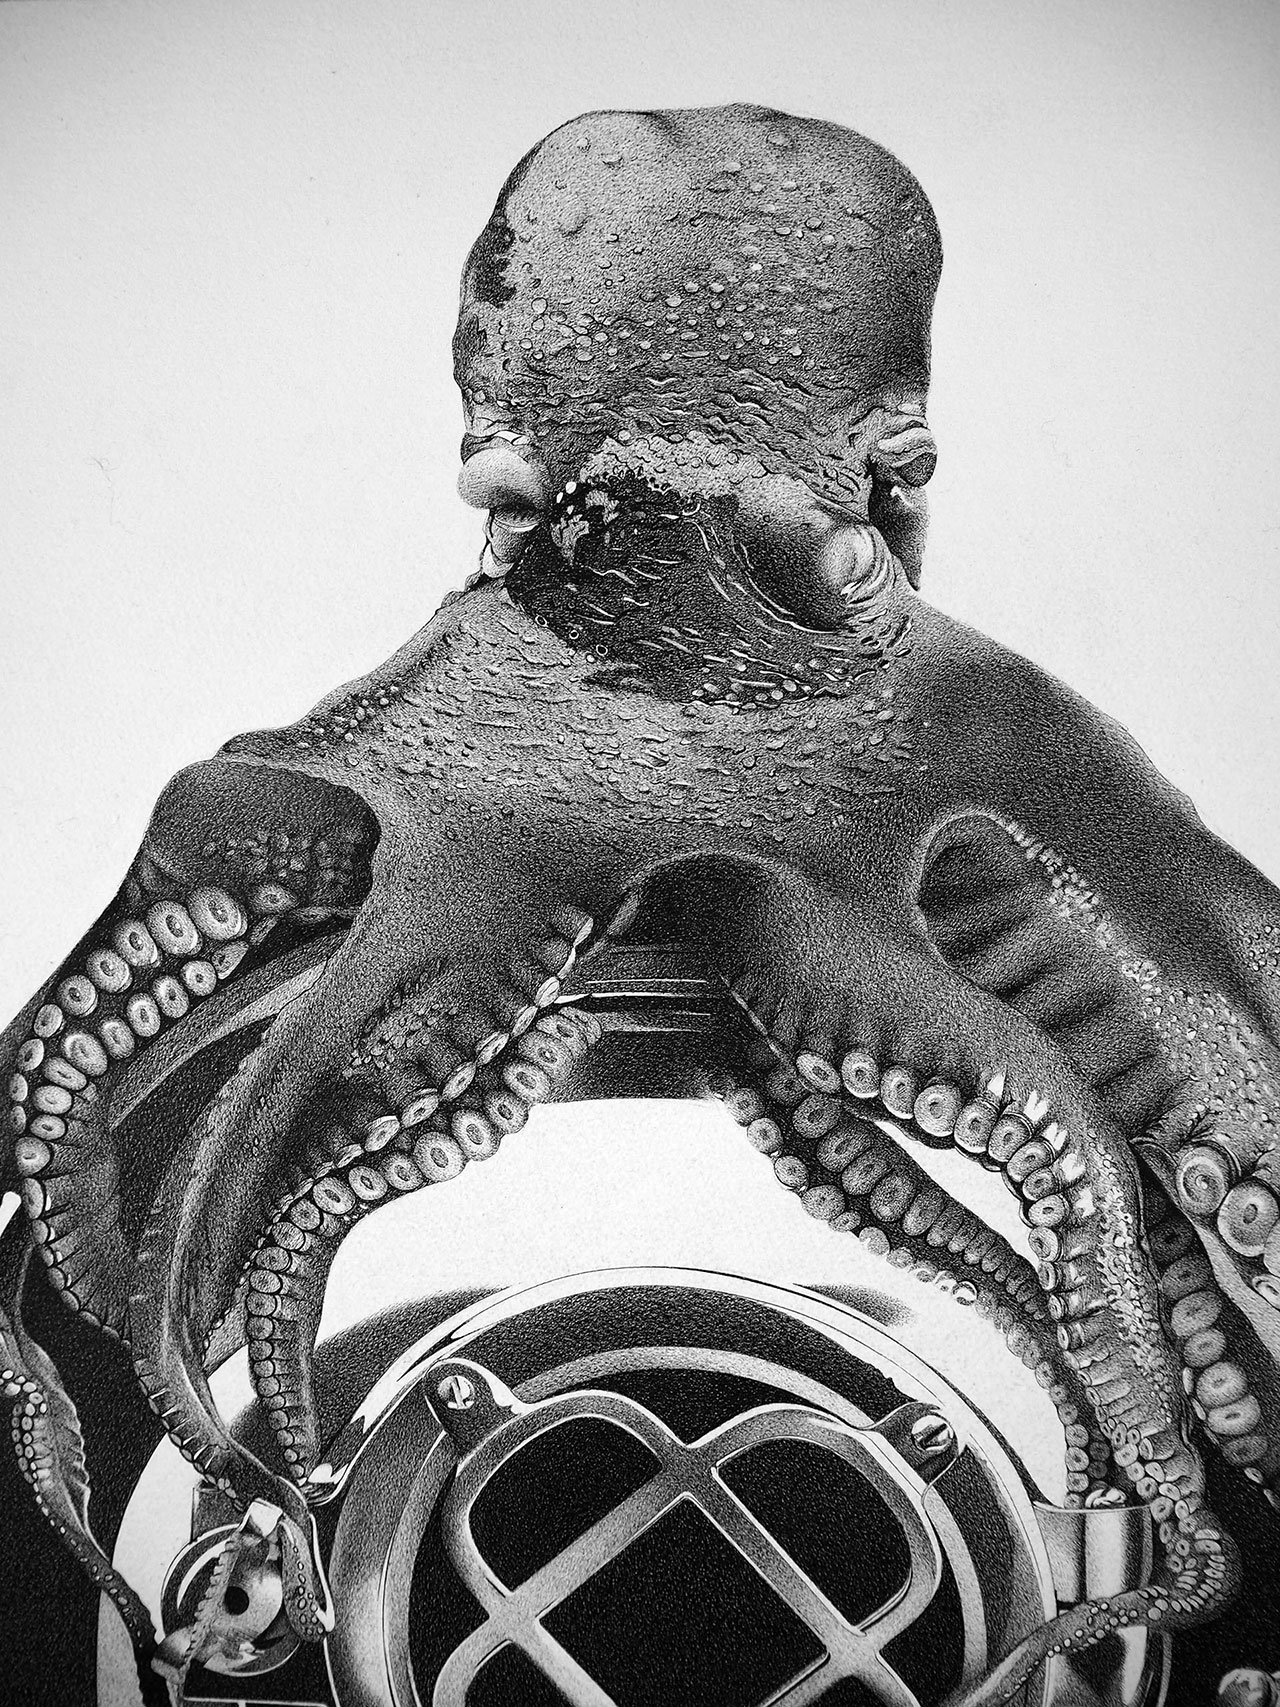 Alessandro Paglia, OCTOPUS (detail), 75 x 100 cm.